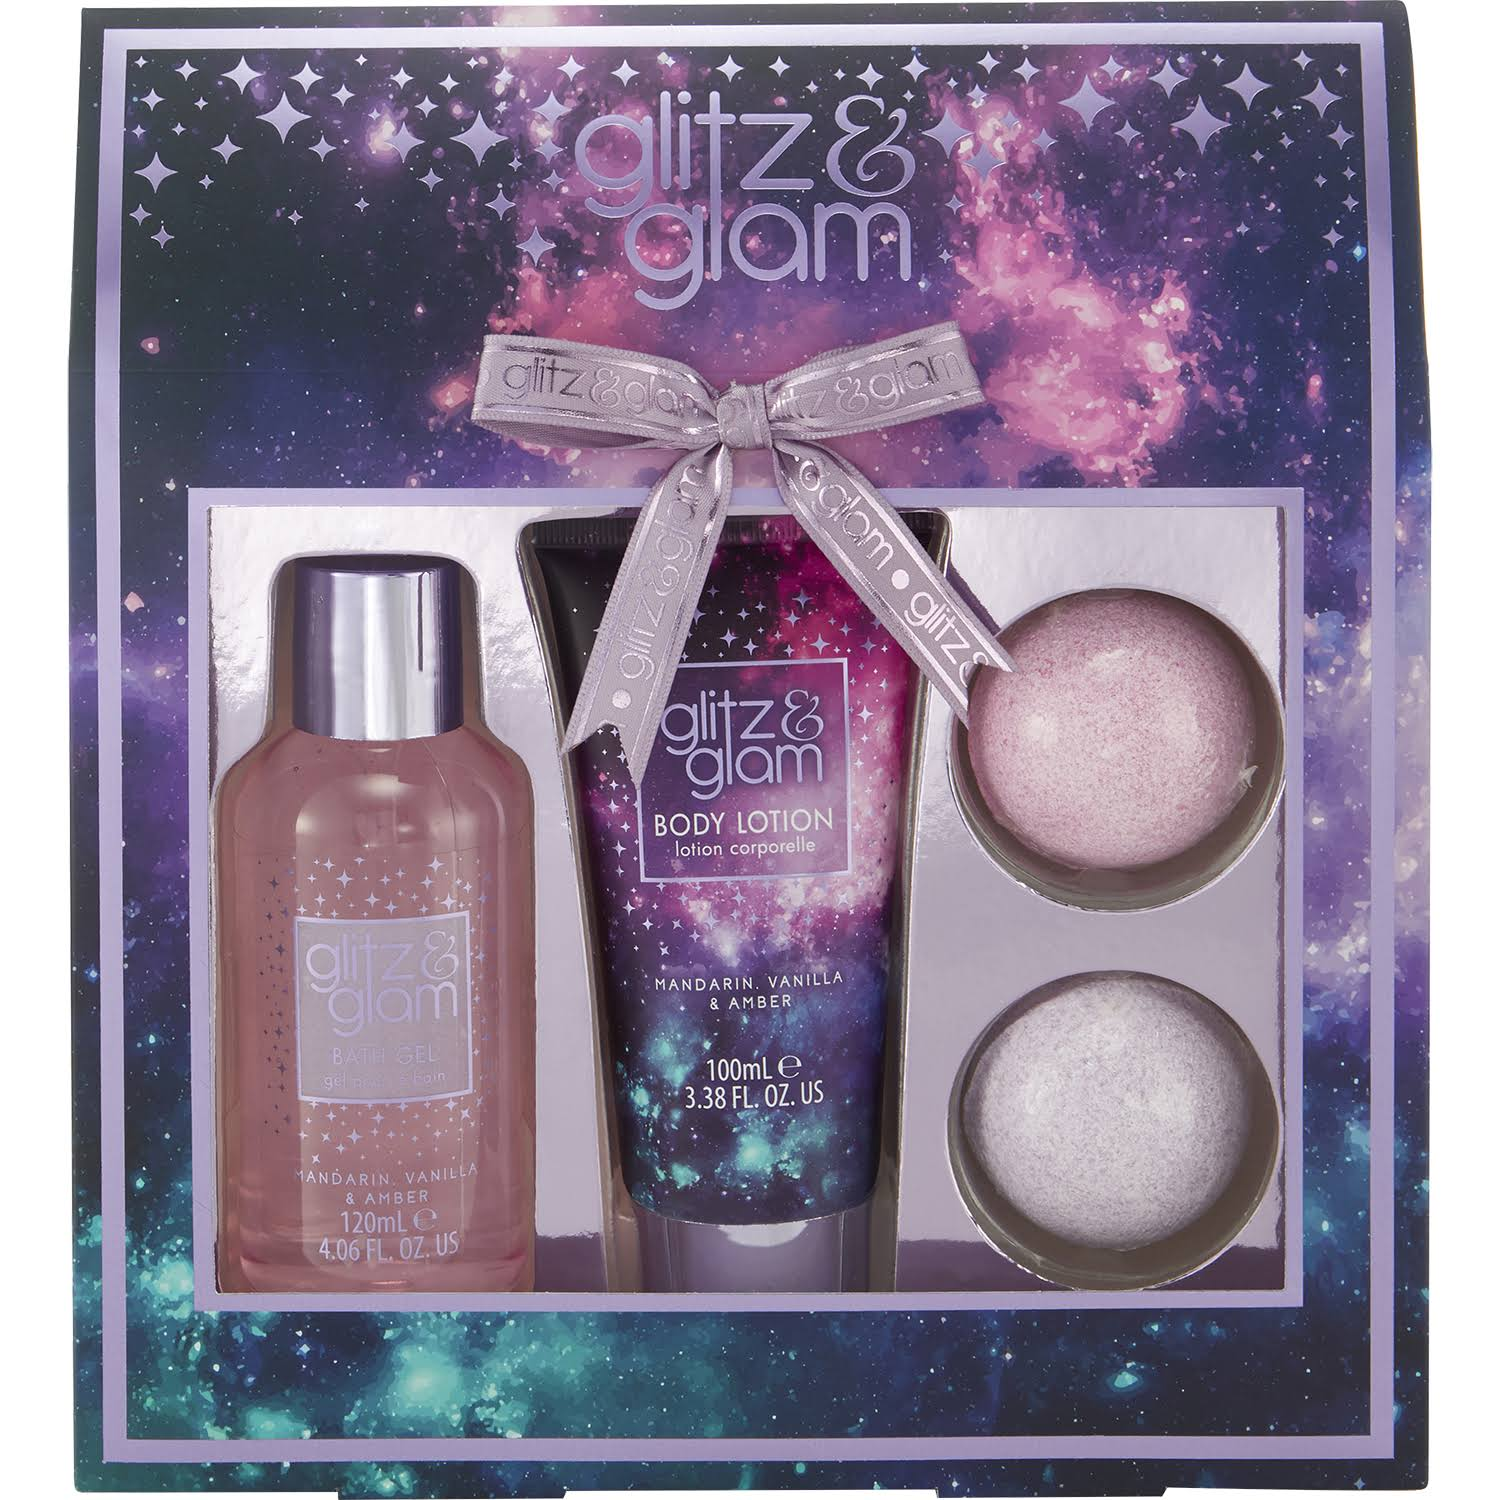 Style & Grace Glitz & Glam Galaxy Gift of the Glow - 3 Pieces